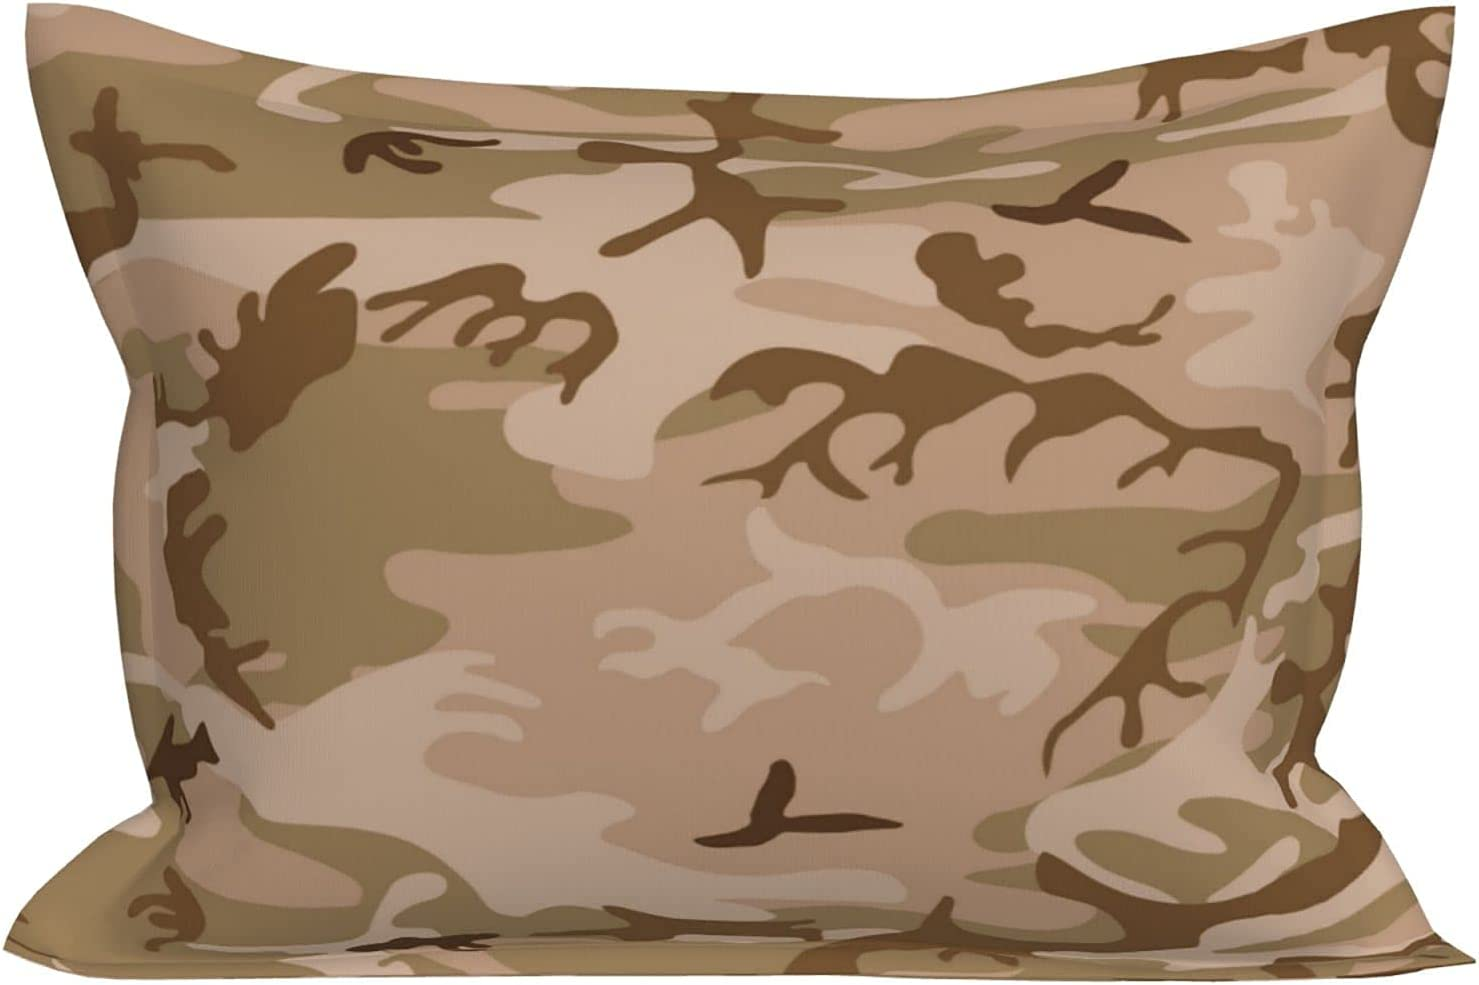 huaxian Department store Desert Limited Special Price Camo Pillowcase - Pillow Cover Microfiber Brushed